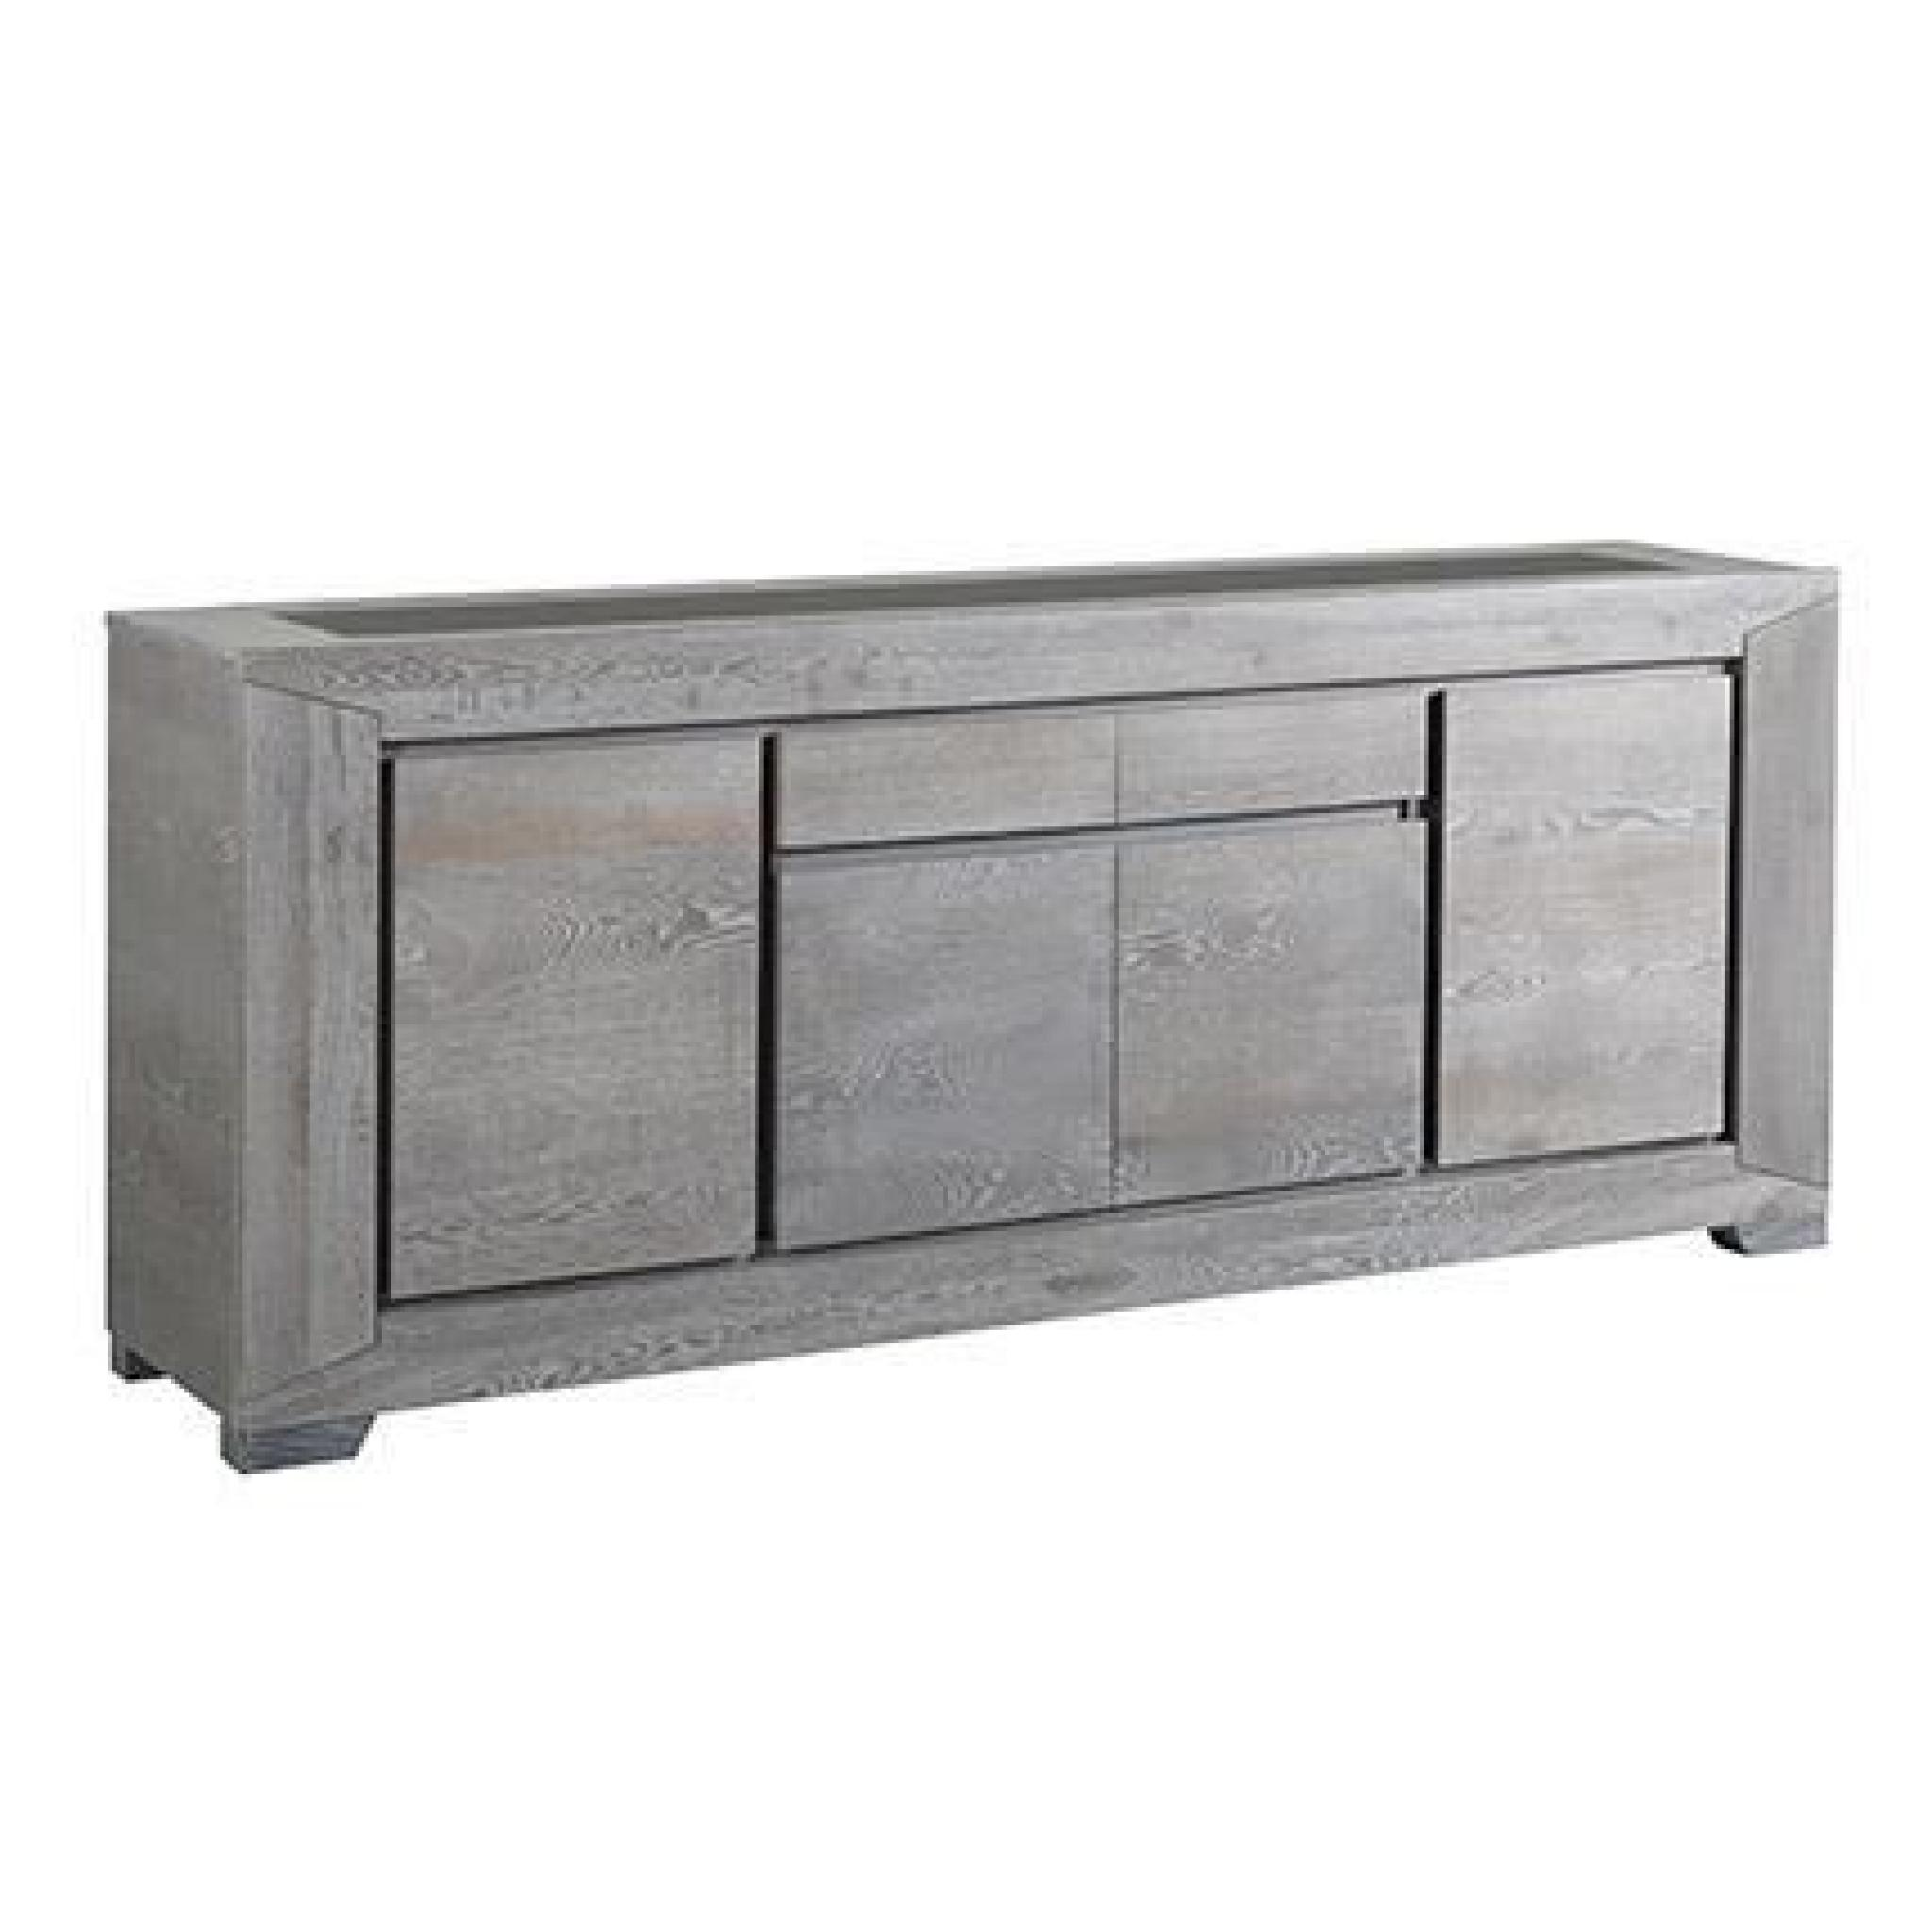 buffet 4 portes pour s jour bruges ch ne gris achat vente buffet pas cher couleur et. Black Bedroom Furniture Sets. Home Design Ideas